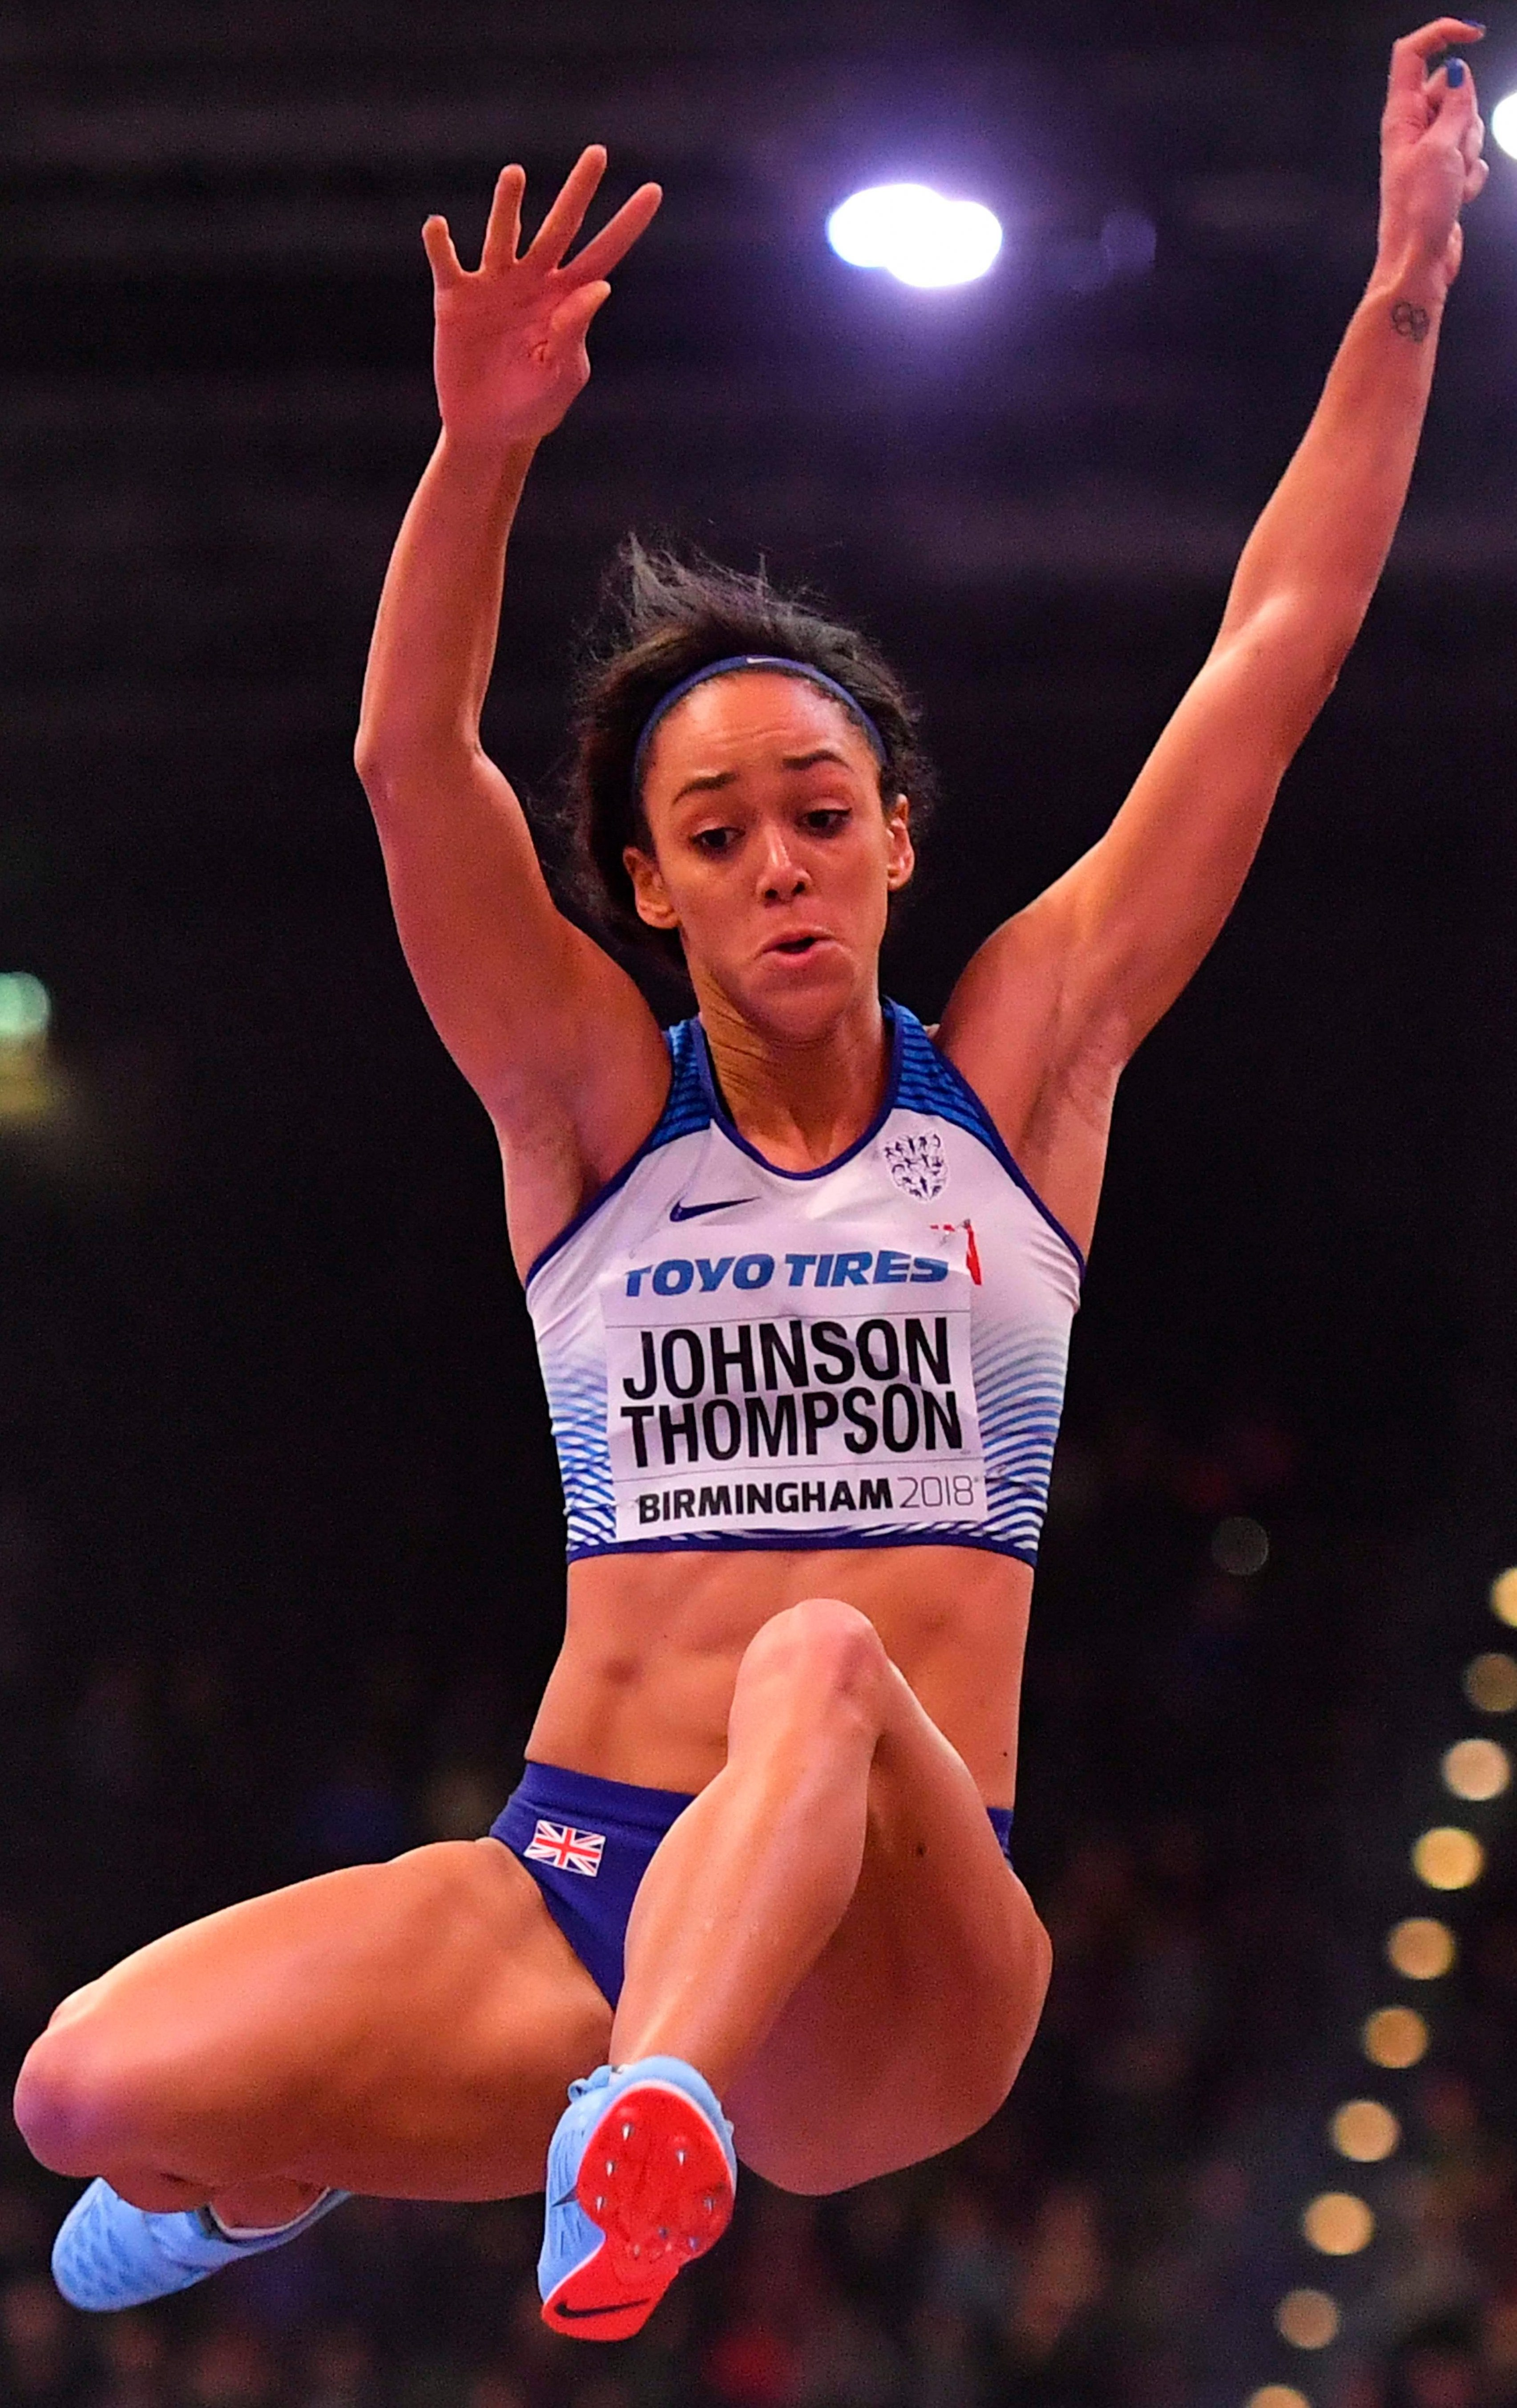 Katarina Johnson-Thompson finally tasted glory on the global stage with victory in the pentathlon at the 2018 World Indoior Championships